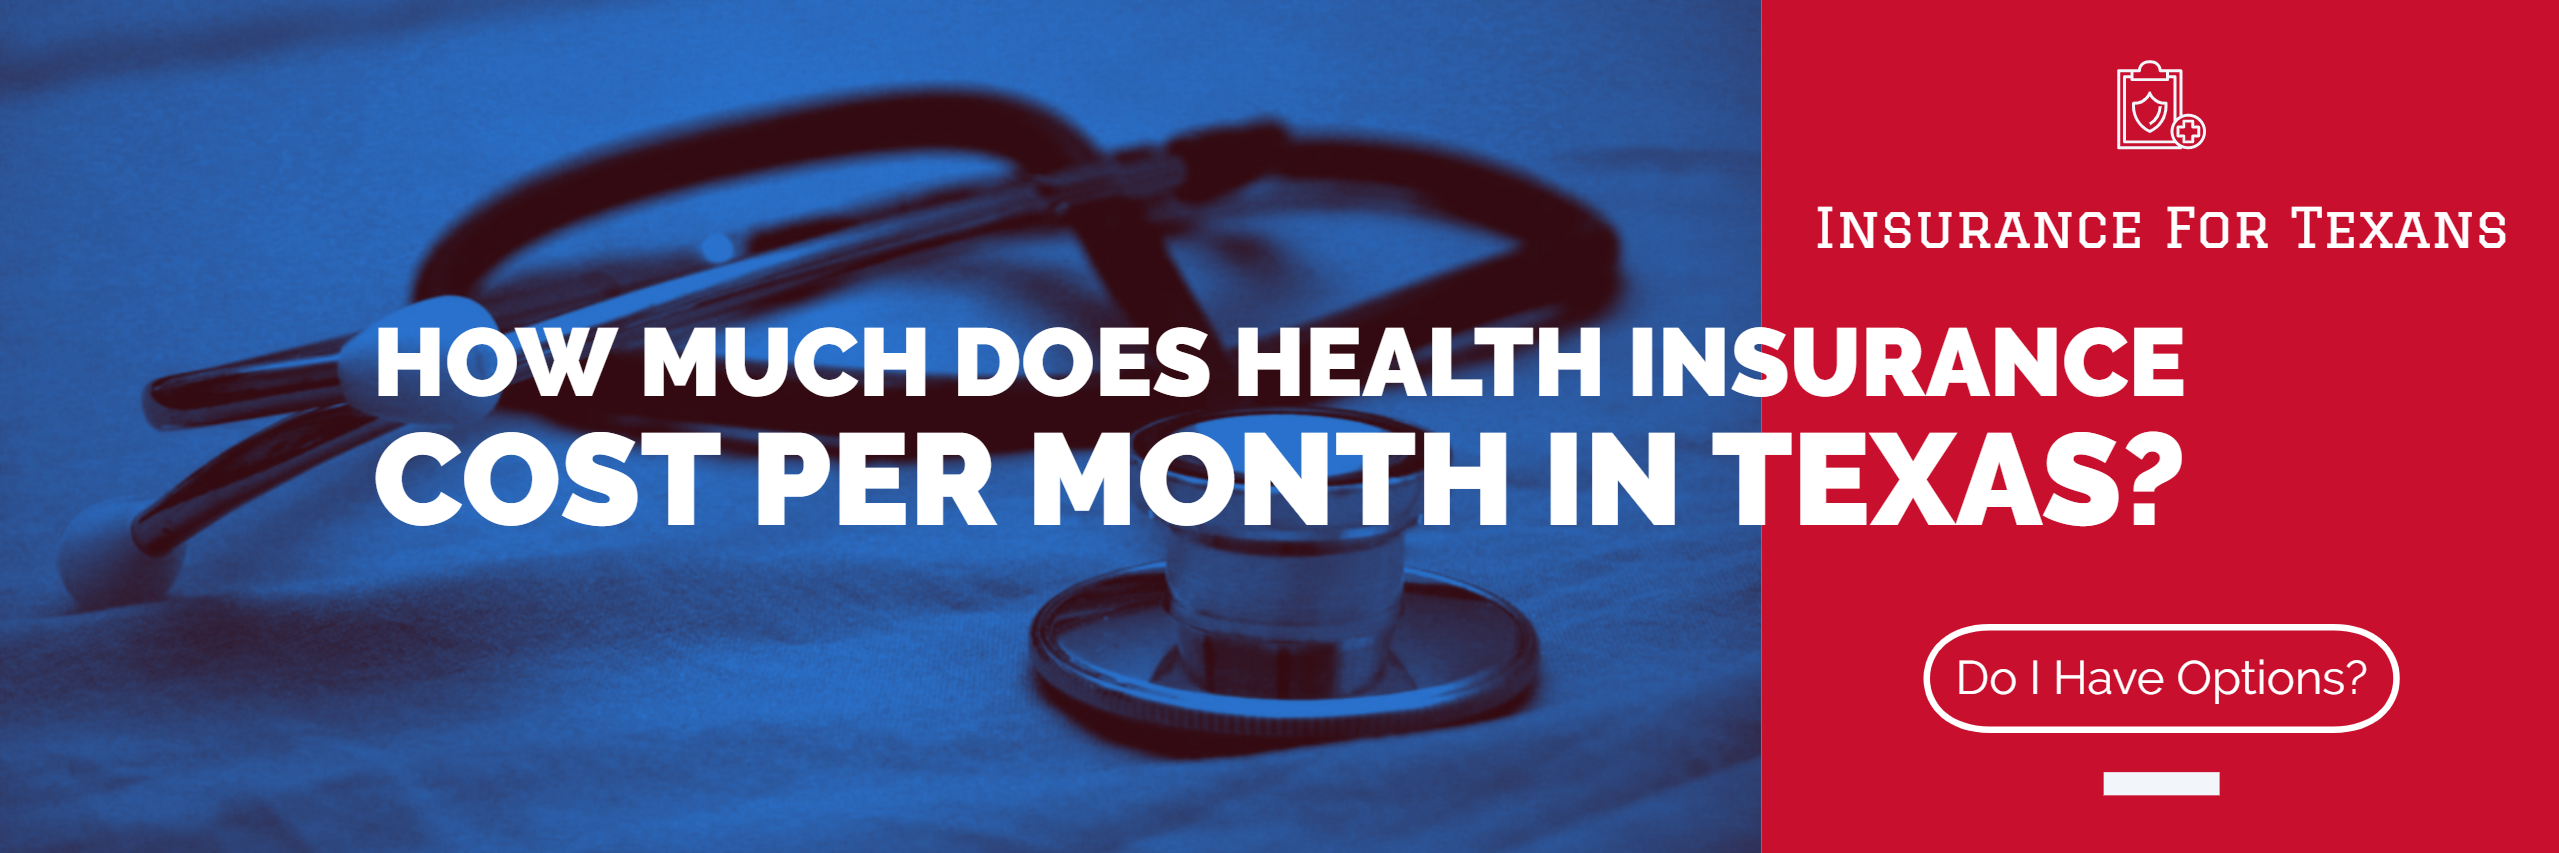 How Much Does Health Insurance Cost Per Month In Texas?